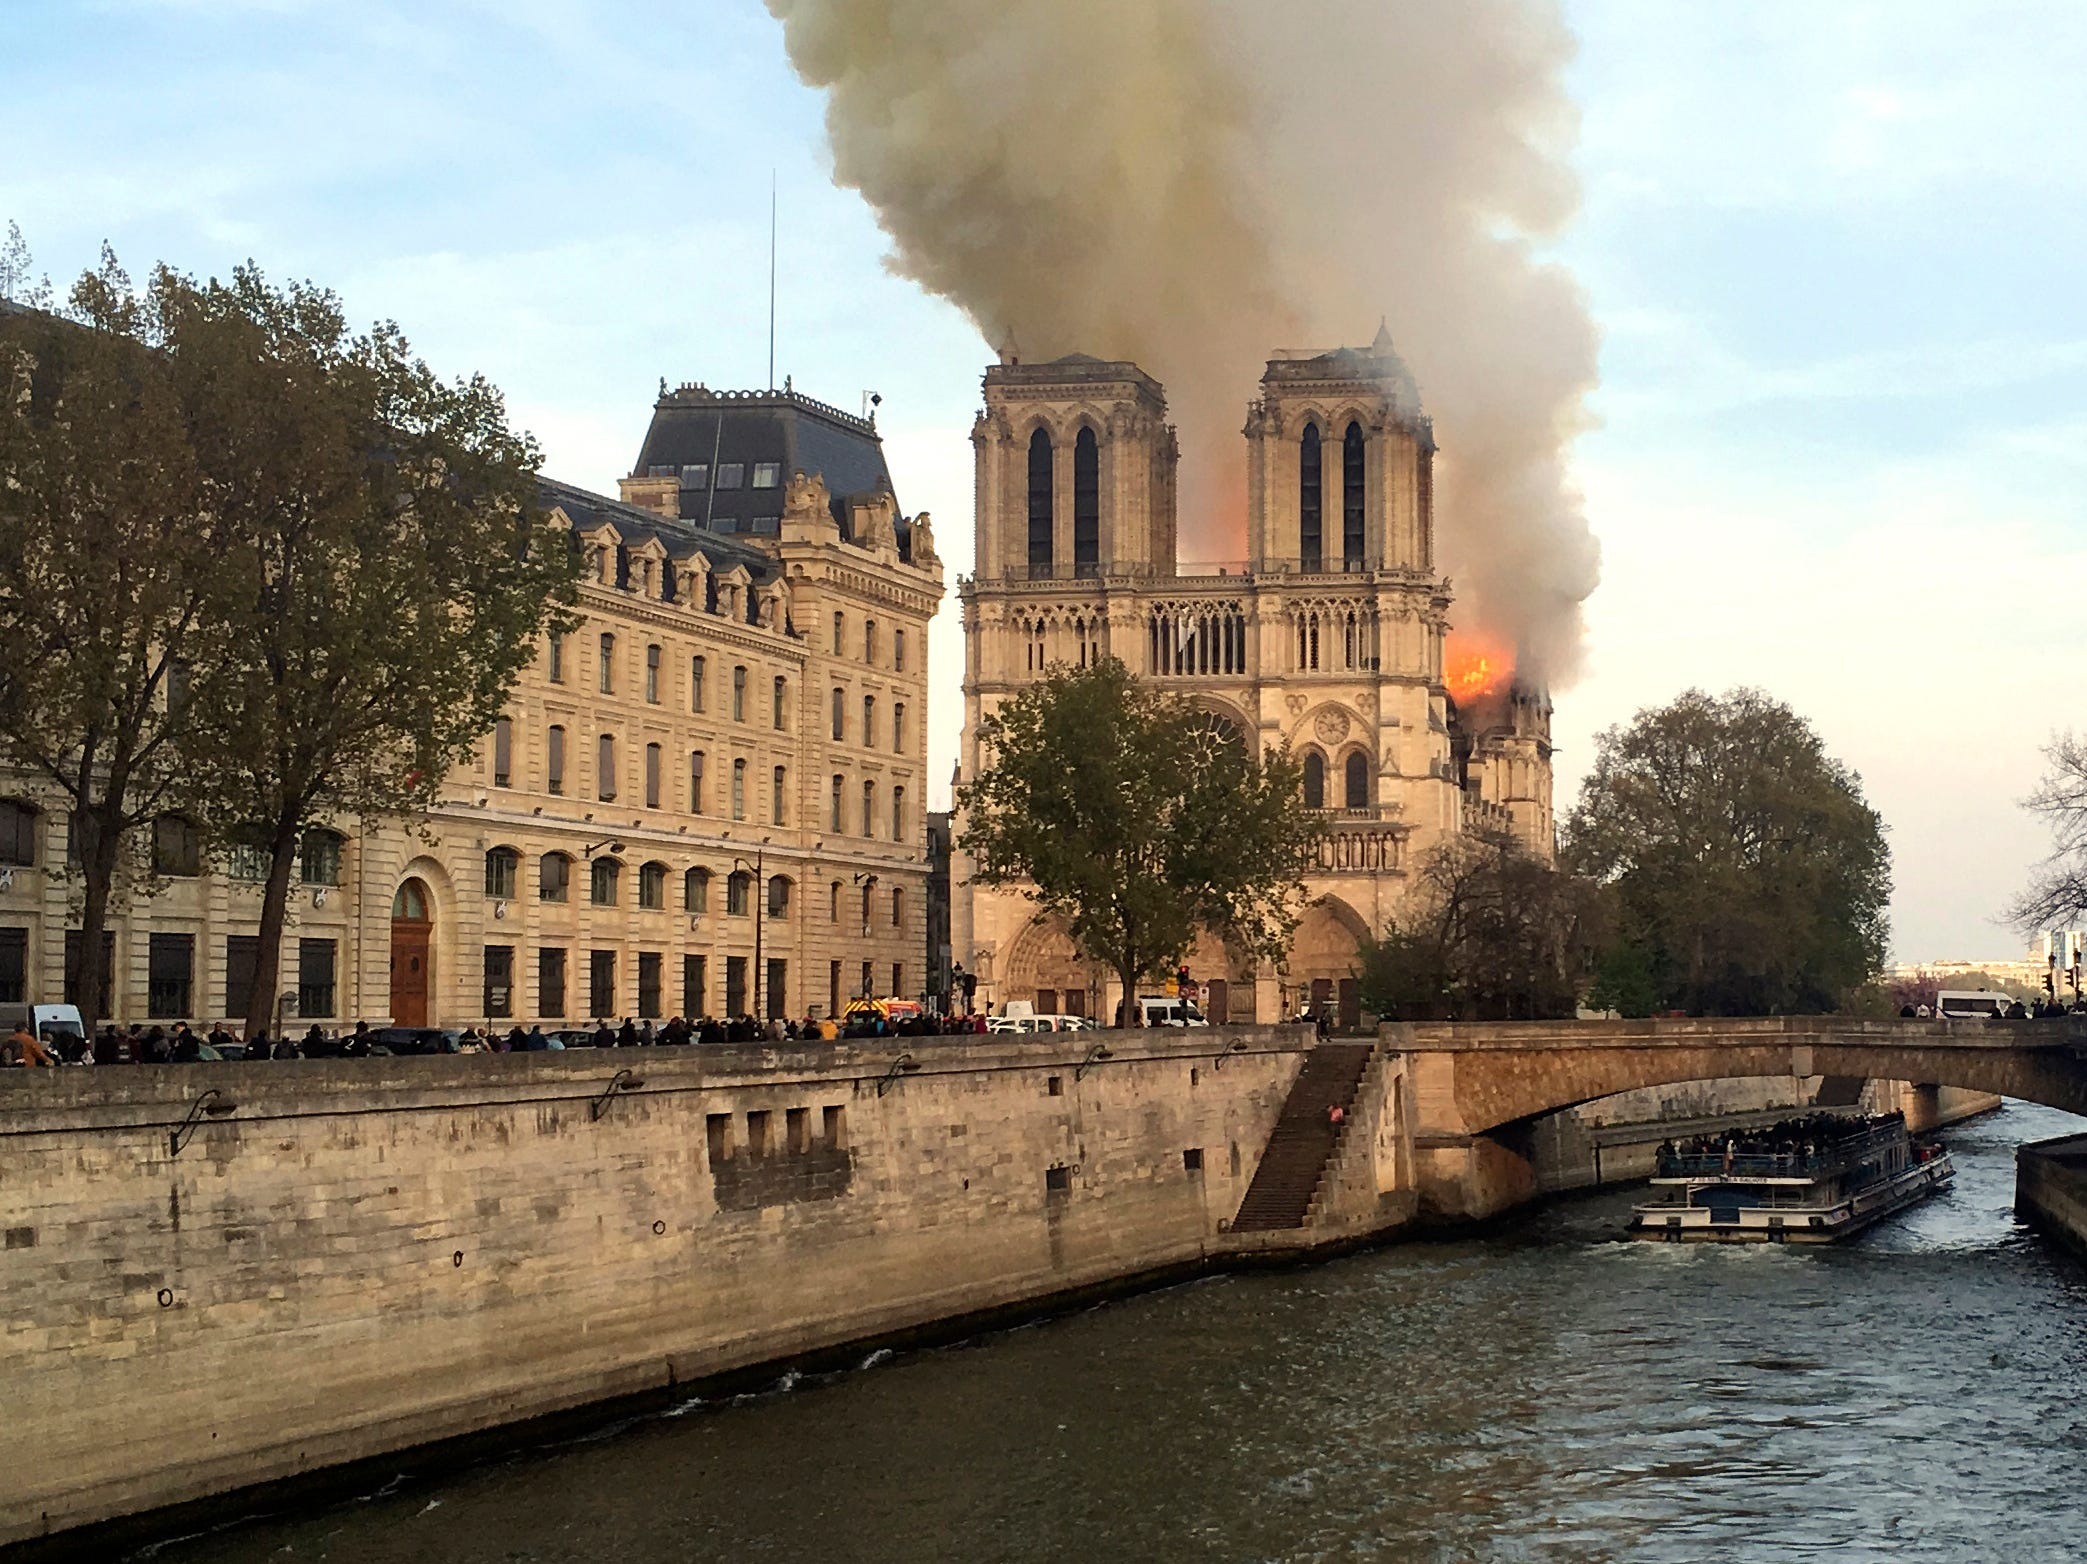 Notre Dame cathedral is burning in Paris, Monday, April 15, 2019. Massive plumes of yellow brown smoke is filling the air above Notre Dame Cathedral and ash is falling on tourists and others around the island that marks the center of Paris. (